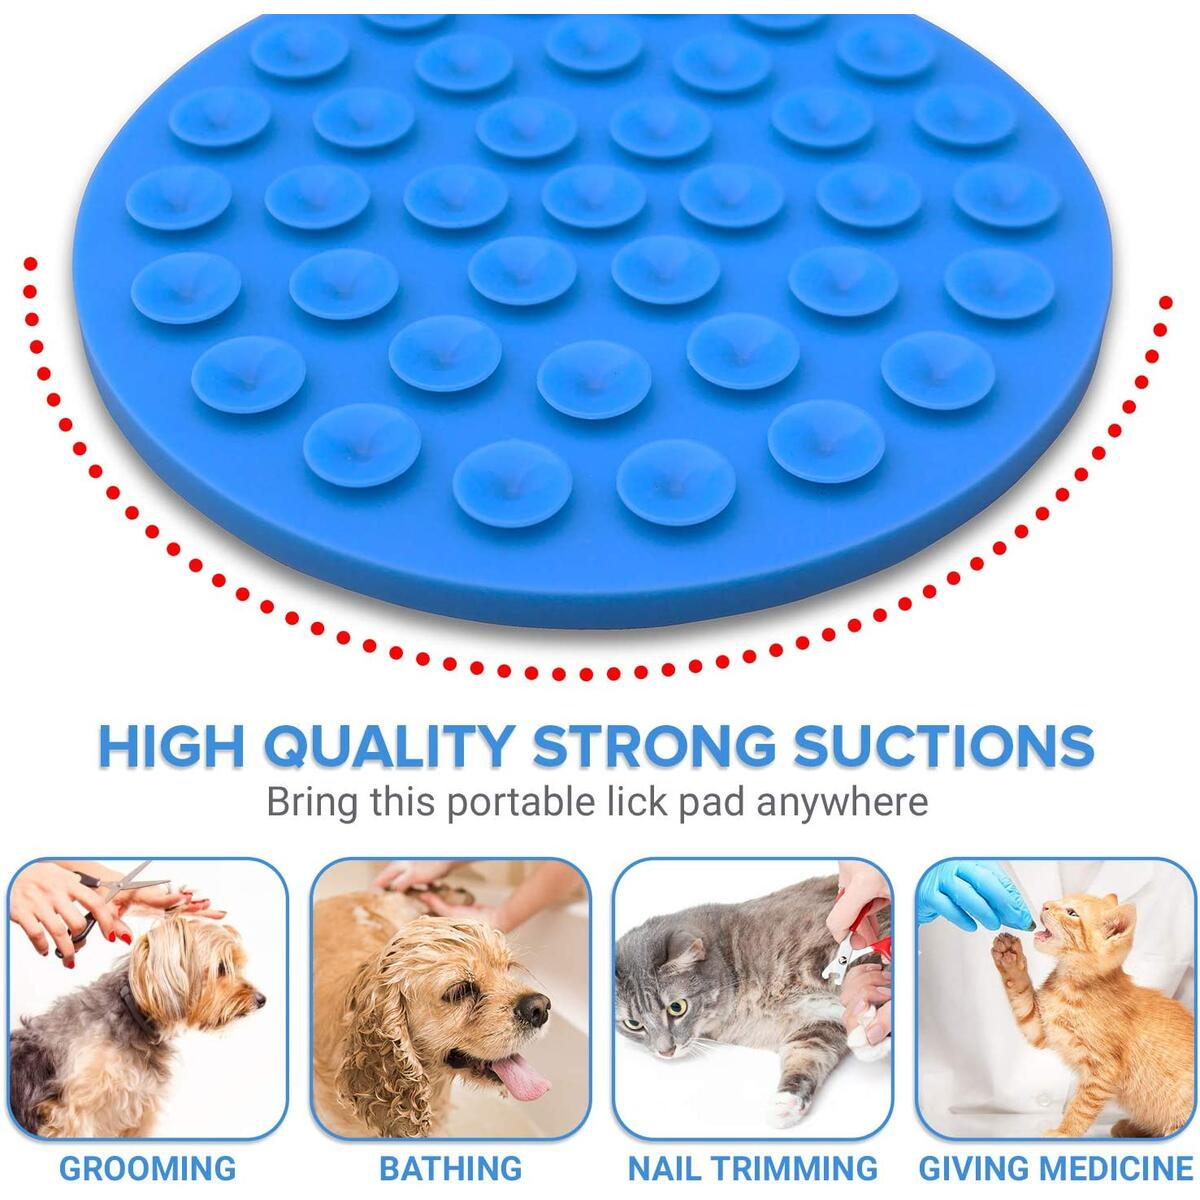 Lick Mat for Dogs - Dog Bath Peanut Butter Lick Pad - Suction Cup Sticks to Shower and Tub - for Grooming, Wash, Trimming Nails, Distraction, Pet Training, Calming Anxiety